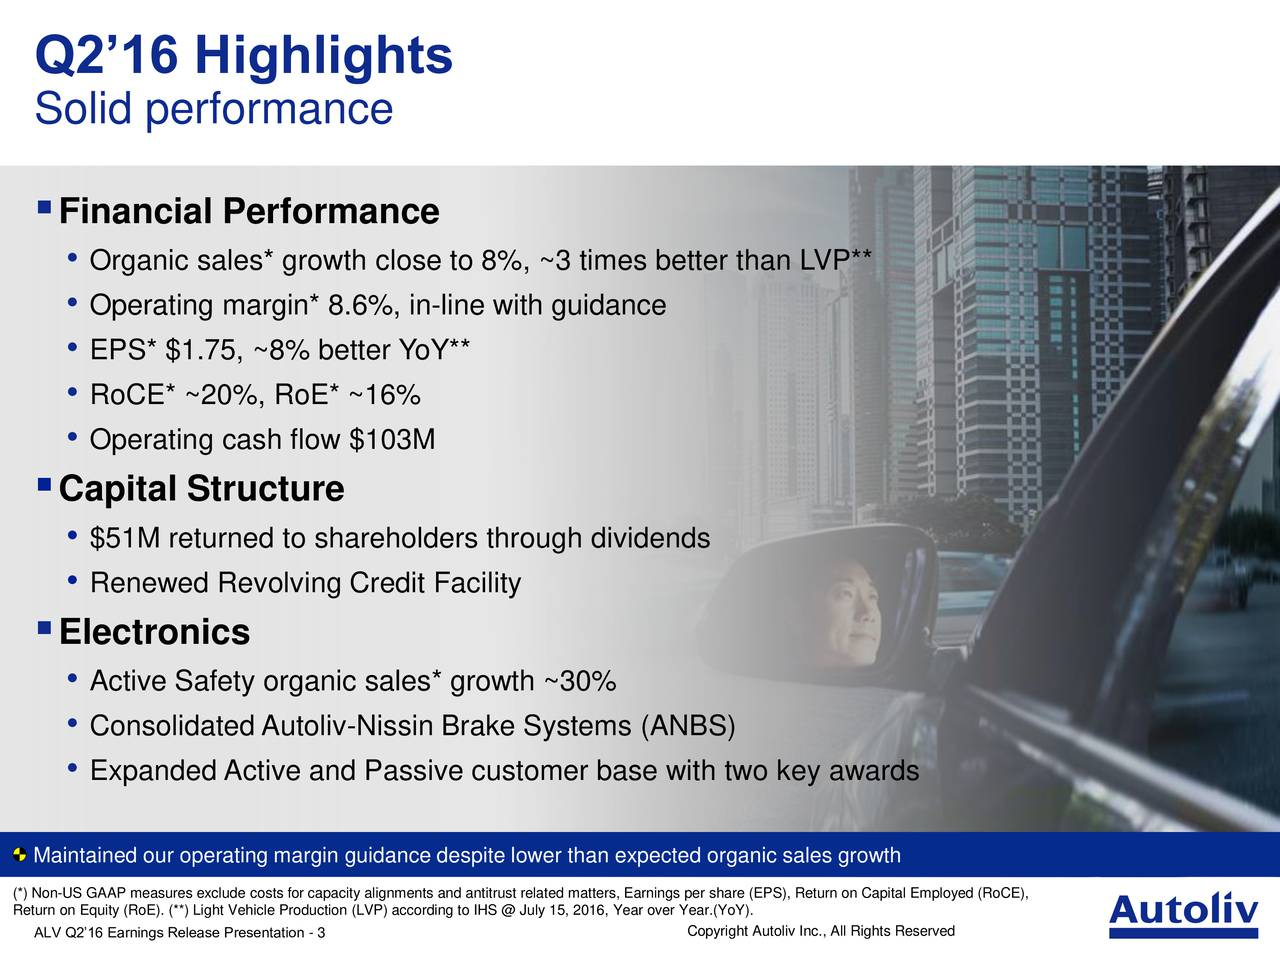 Solid performance Financial Performance Organic sales* growth close to 8%, ~3 times better than LVP** Operating margin* 8.6%, in-line with guidance EPS* $1.75, ~8% better YoY** RoCE* ~20%, RoE* ~16% Operating cash flow $103M Capital Structure $51M returned to shareholders through dividends Renewed Revolving Credit Facility Electronics Active Safety organic sales* growth ~30% Consolidated Autoliv-Nissin Brake Systems (ANBS) Expanded Active and Passive customer base with two key awards Maintained our operating margin guidance despite lower than expected organic sales growth (*) Non-US GAAP measures exclude costs for capacity alignments and antitrust related matters, Earnings per share (EPS), Return on Capital Employed (RoCE), ReALV Q216 Earnings Release Presentation - 3oductiCopyright Autoliv Inc., All Rights ReservedYear over Year.(YoY).